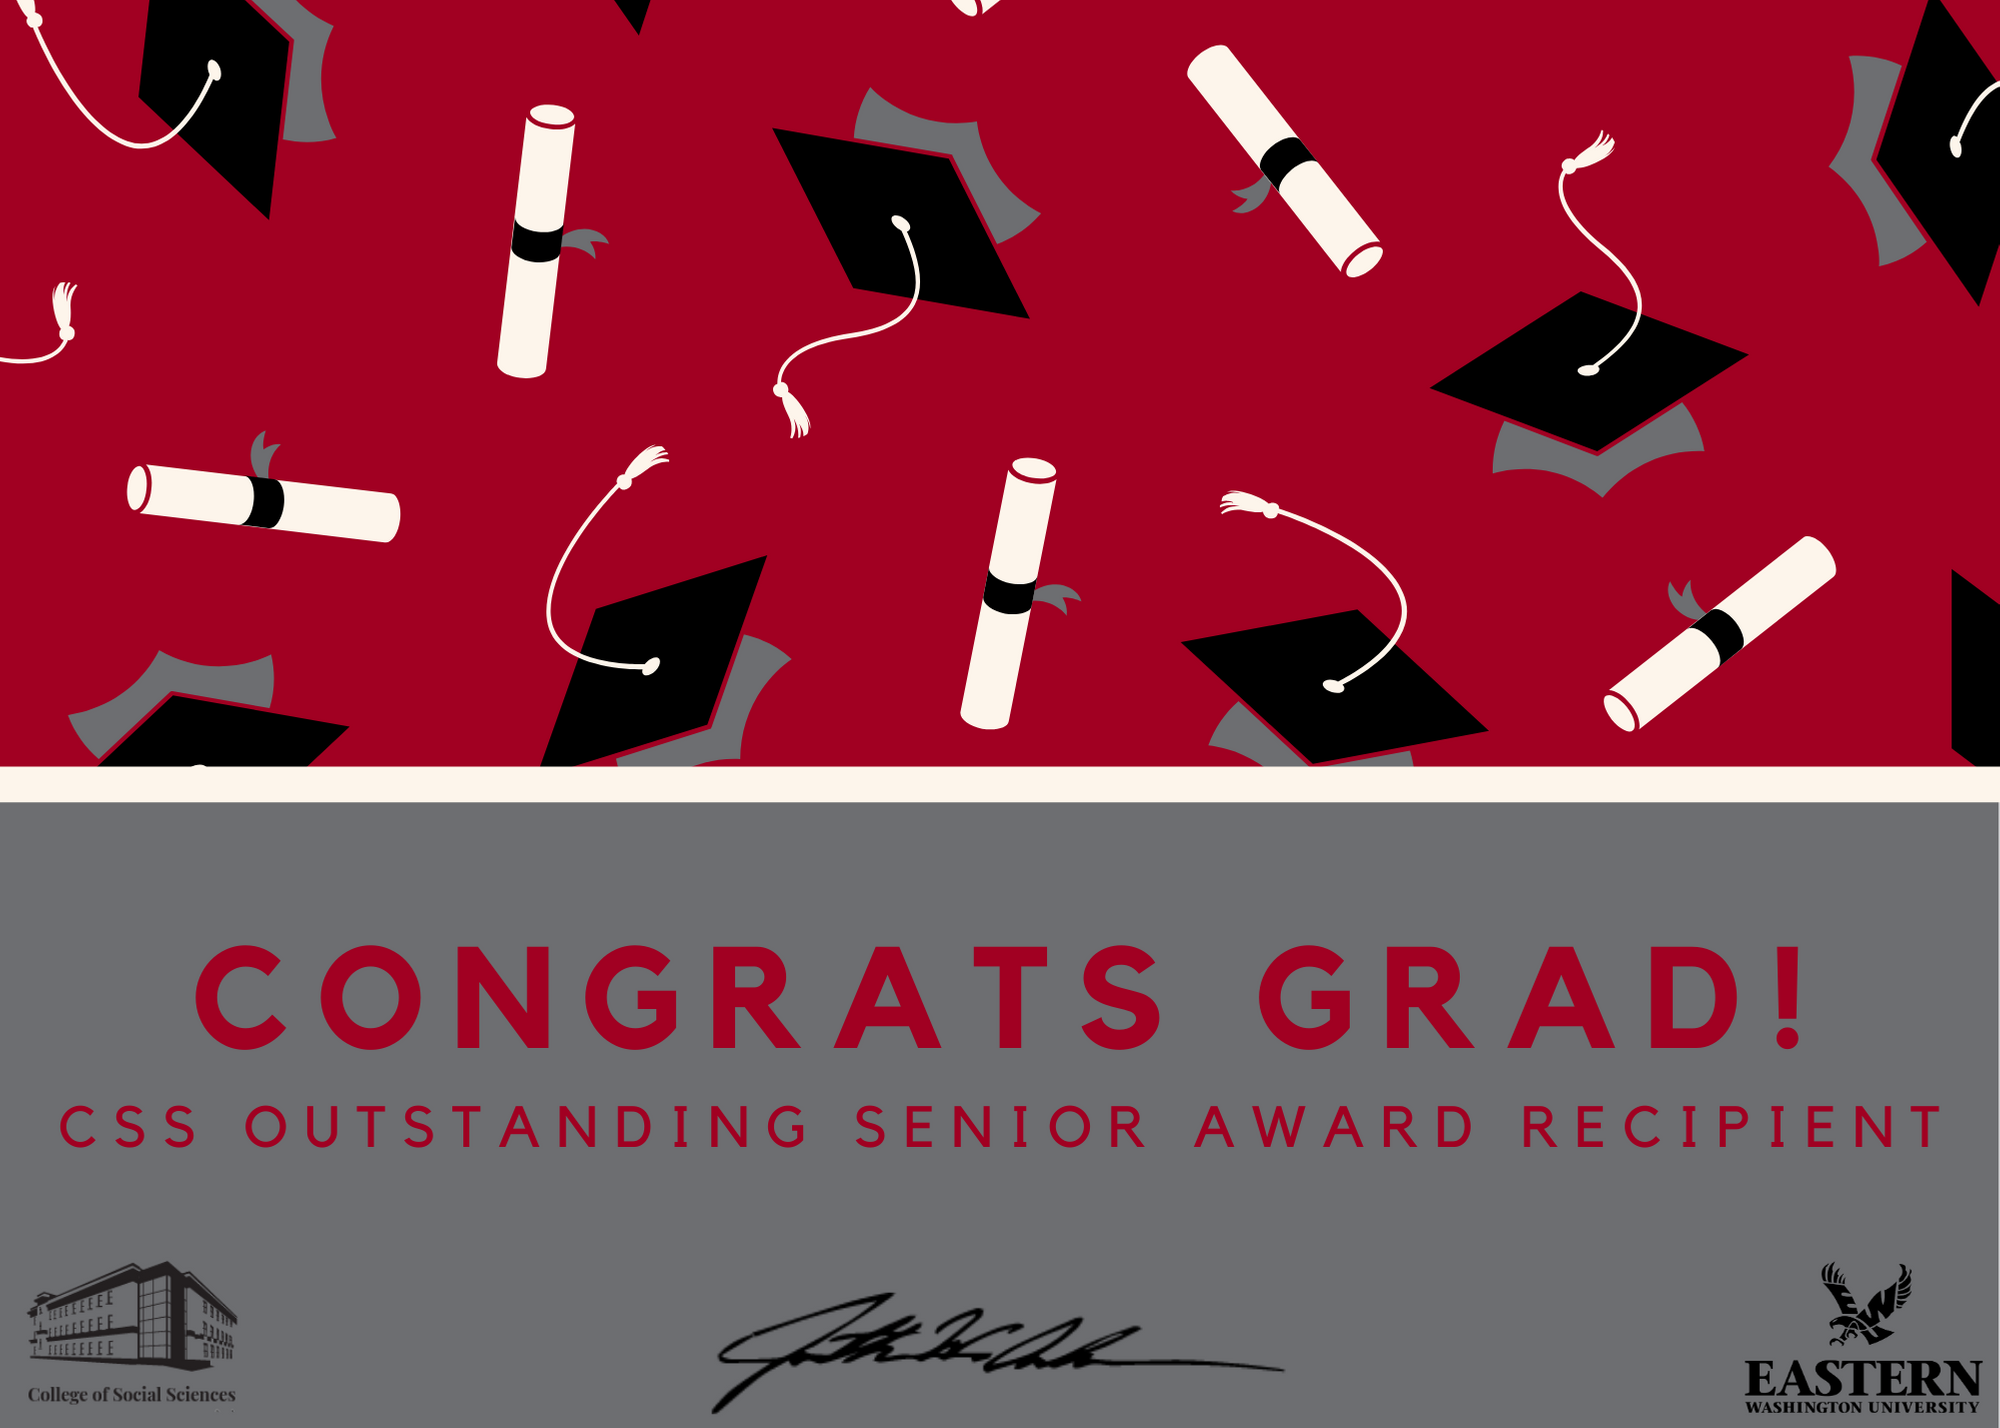 2311-caps-and-diplomas-pattern-graduation-card-2.png